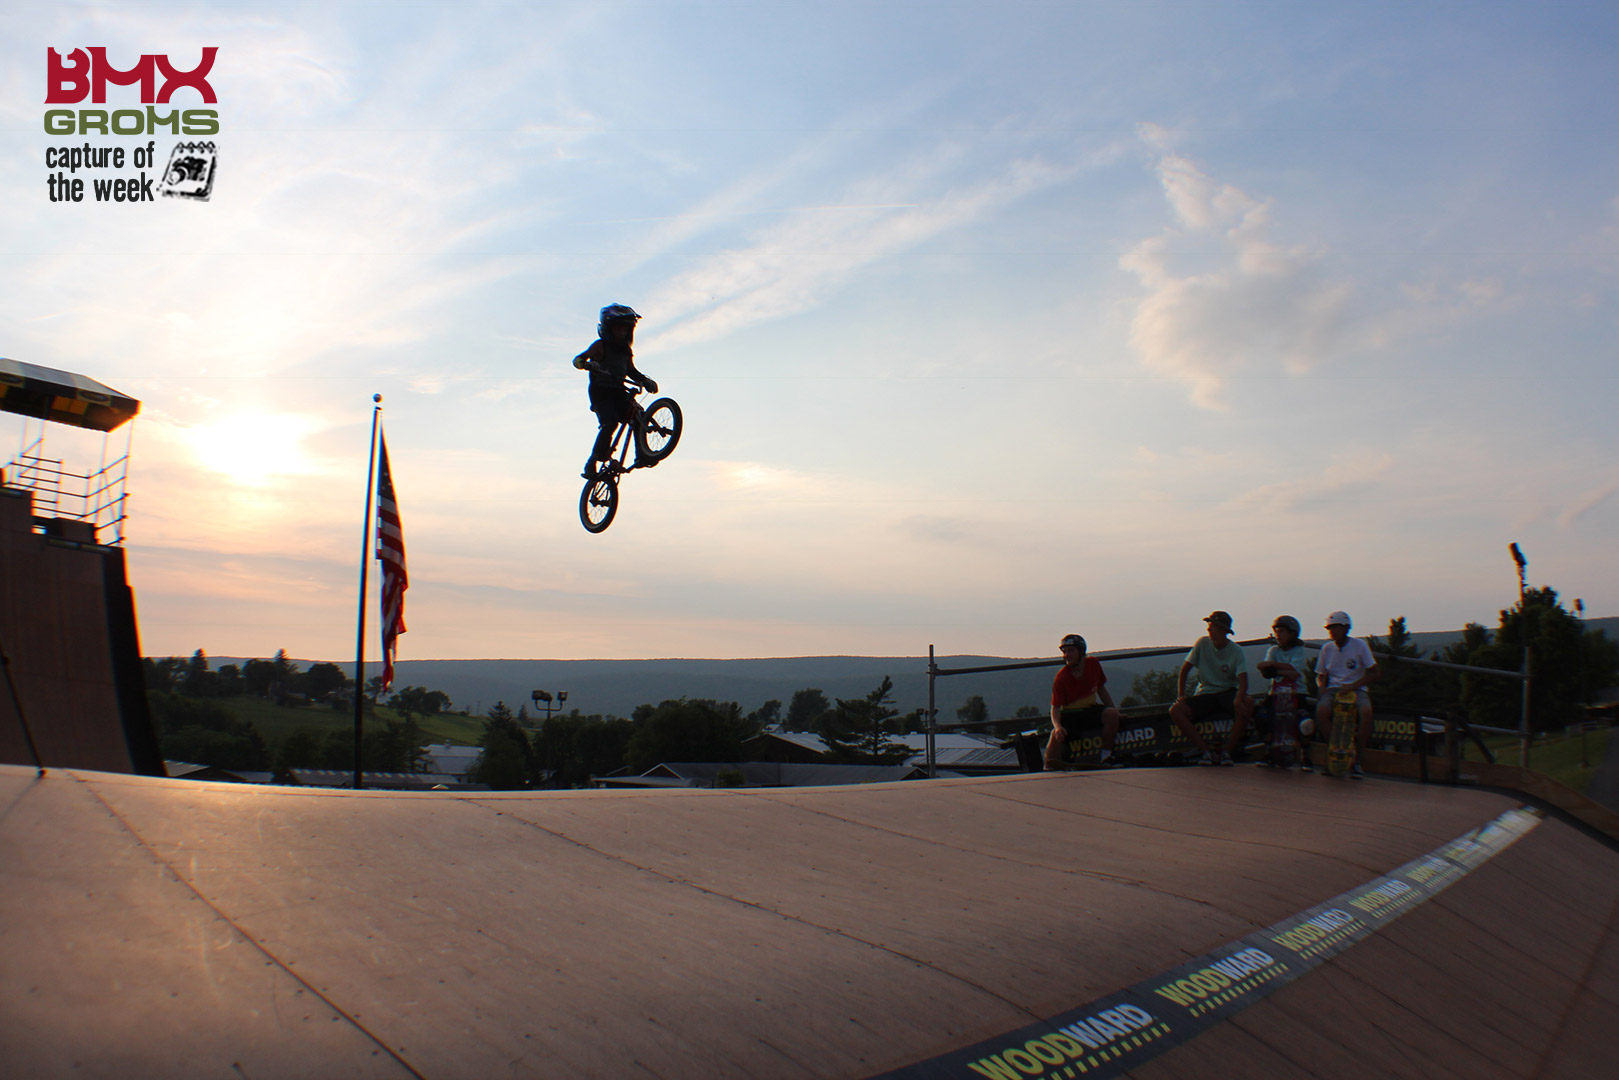 Jake Rutkowitz Bmx Groms Picture of the Week